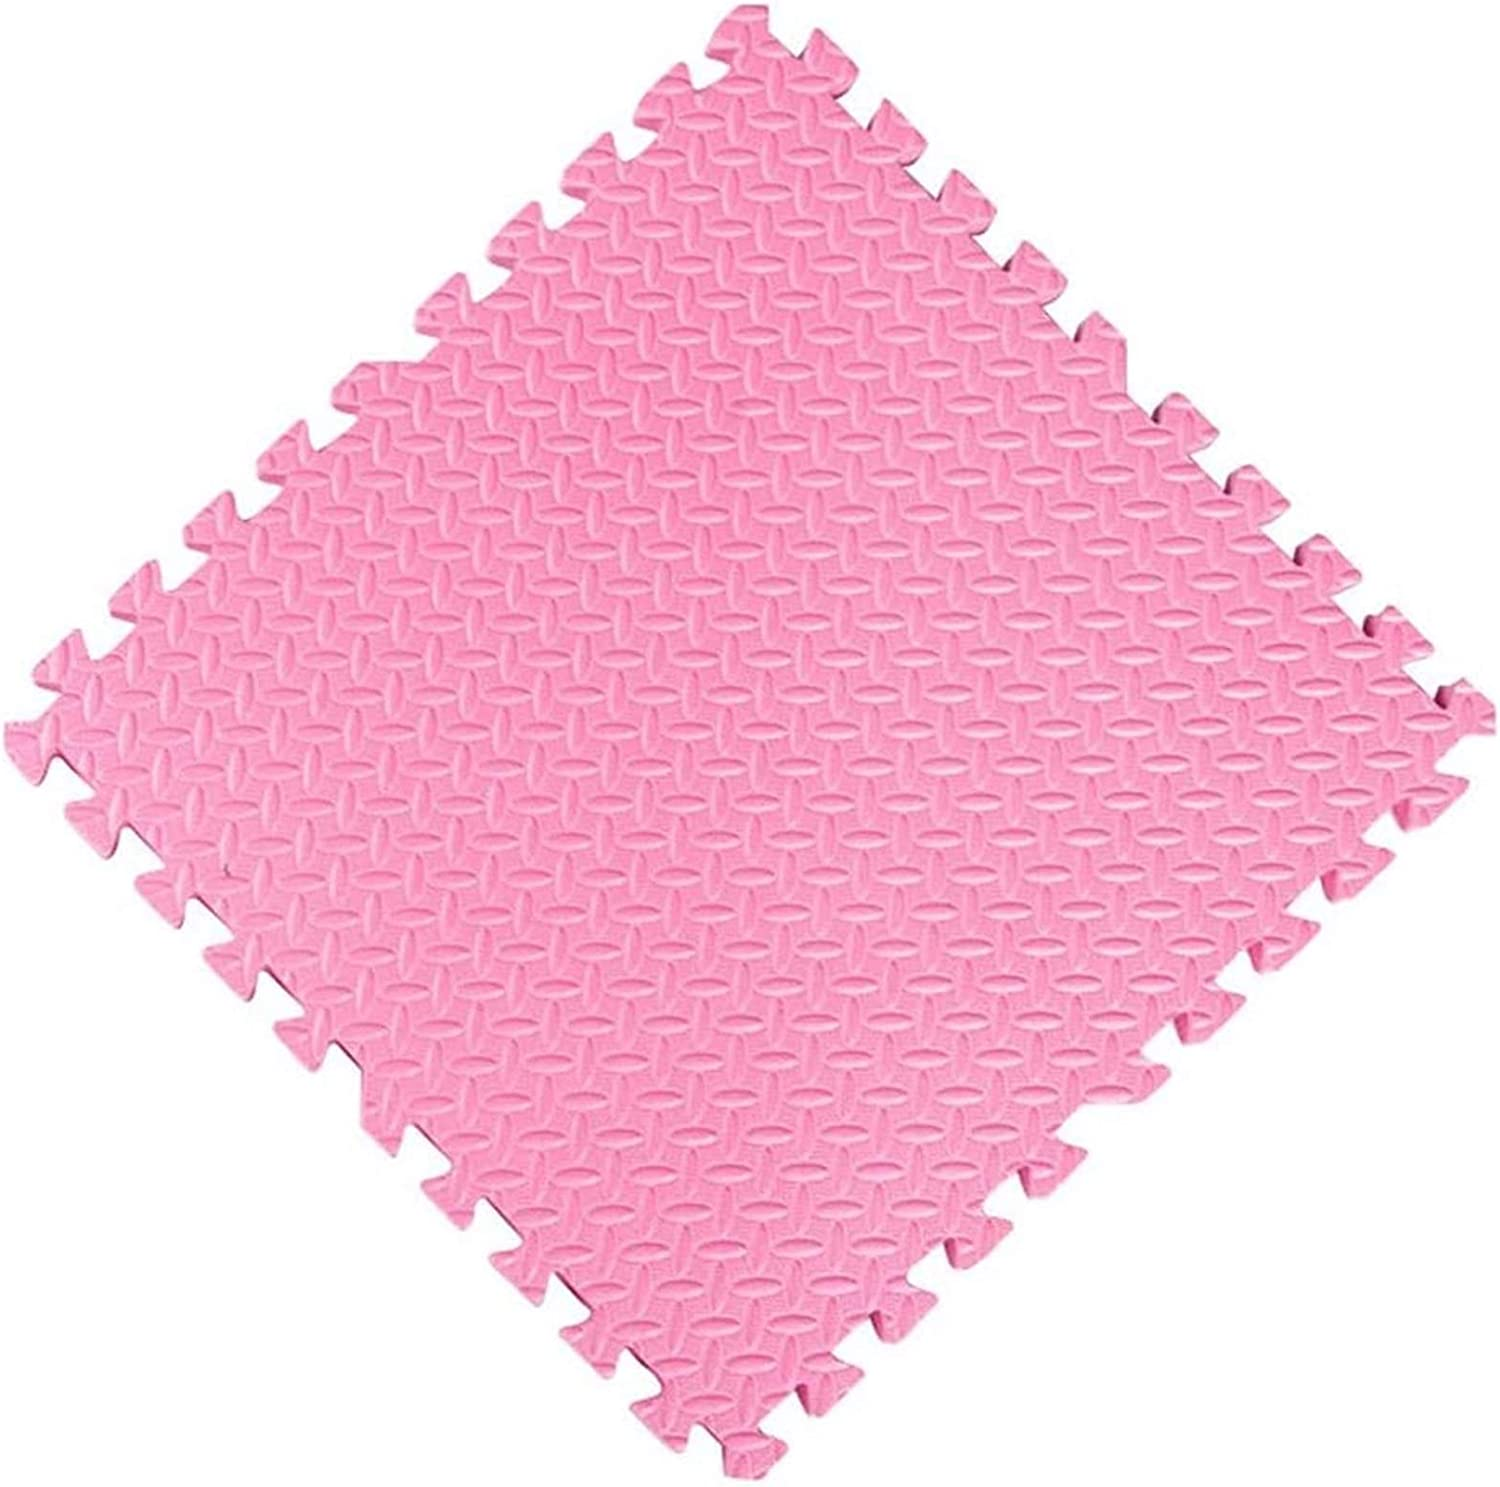 Puzzle Play Mats Versatile Spasm price Foam Durable And Offering Tough Great interest